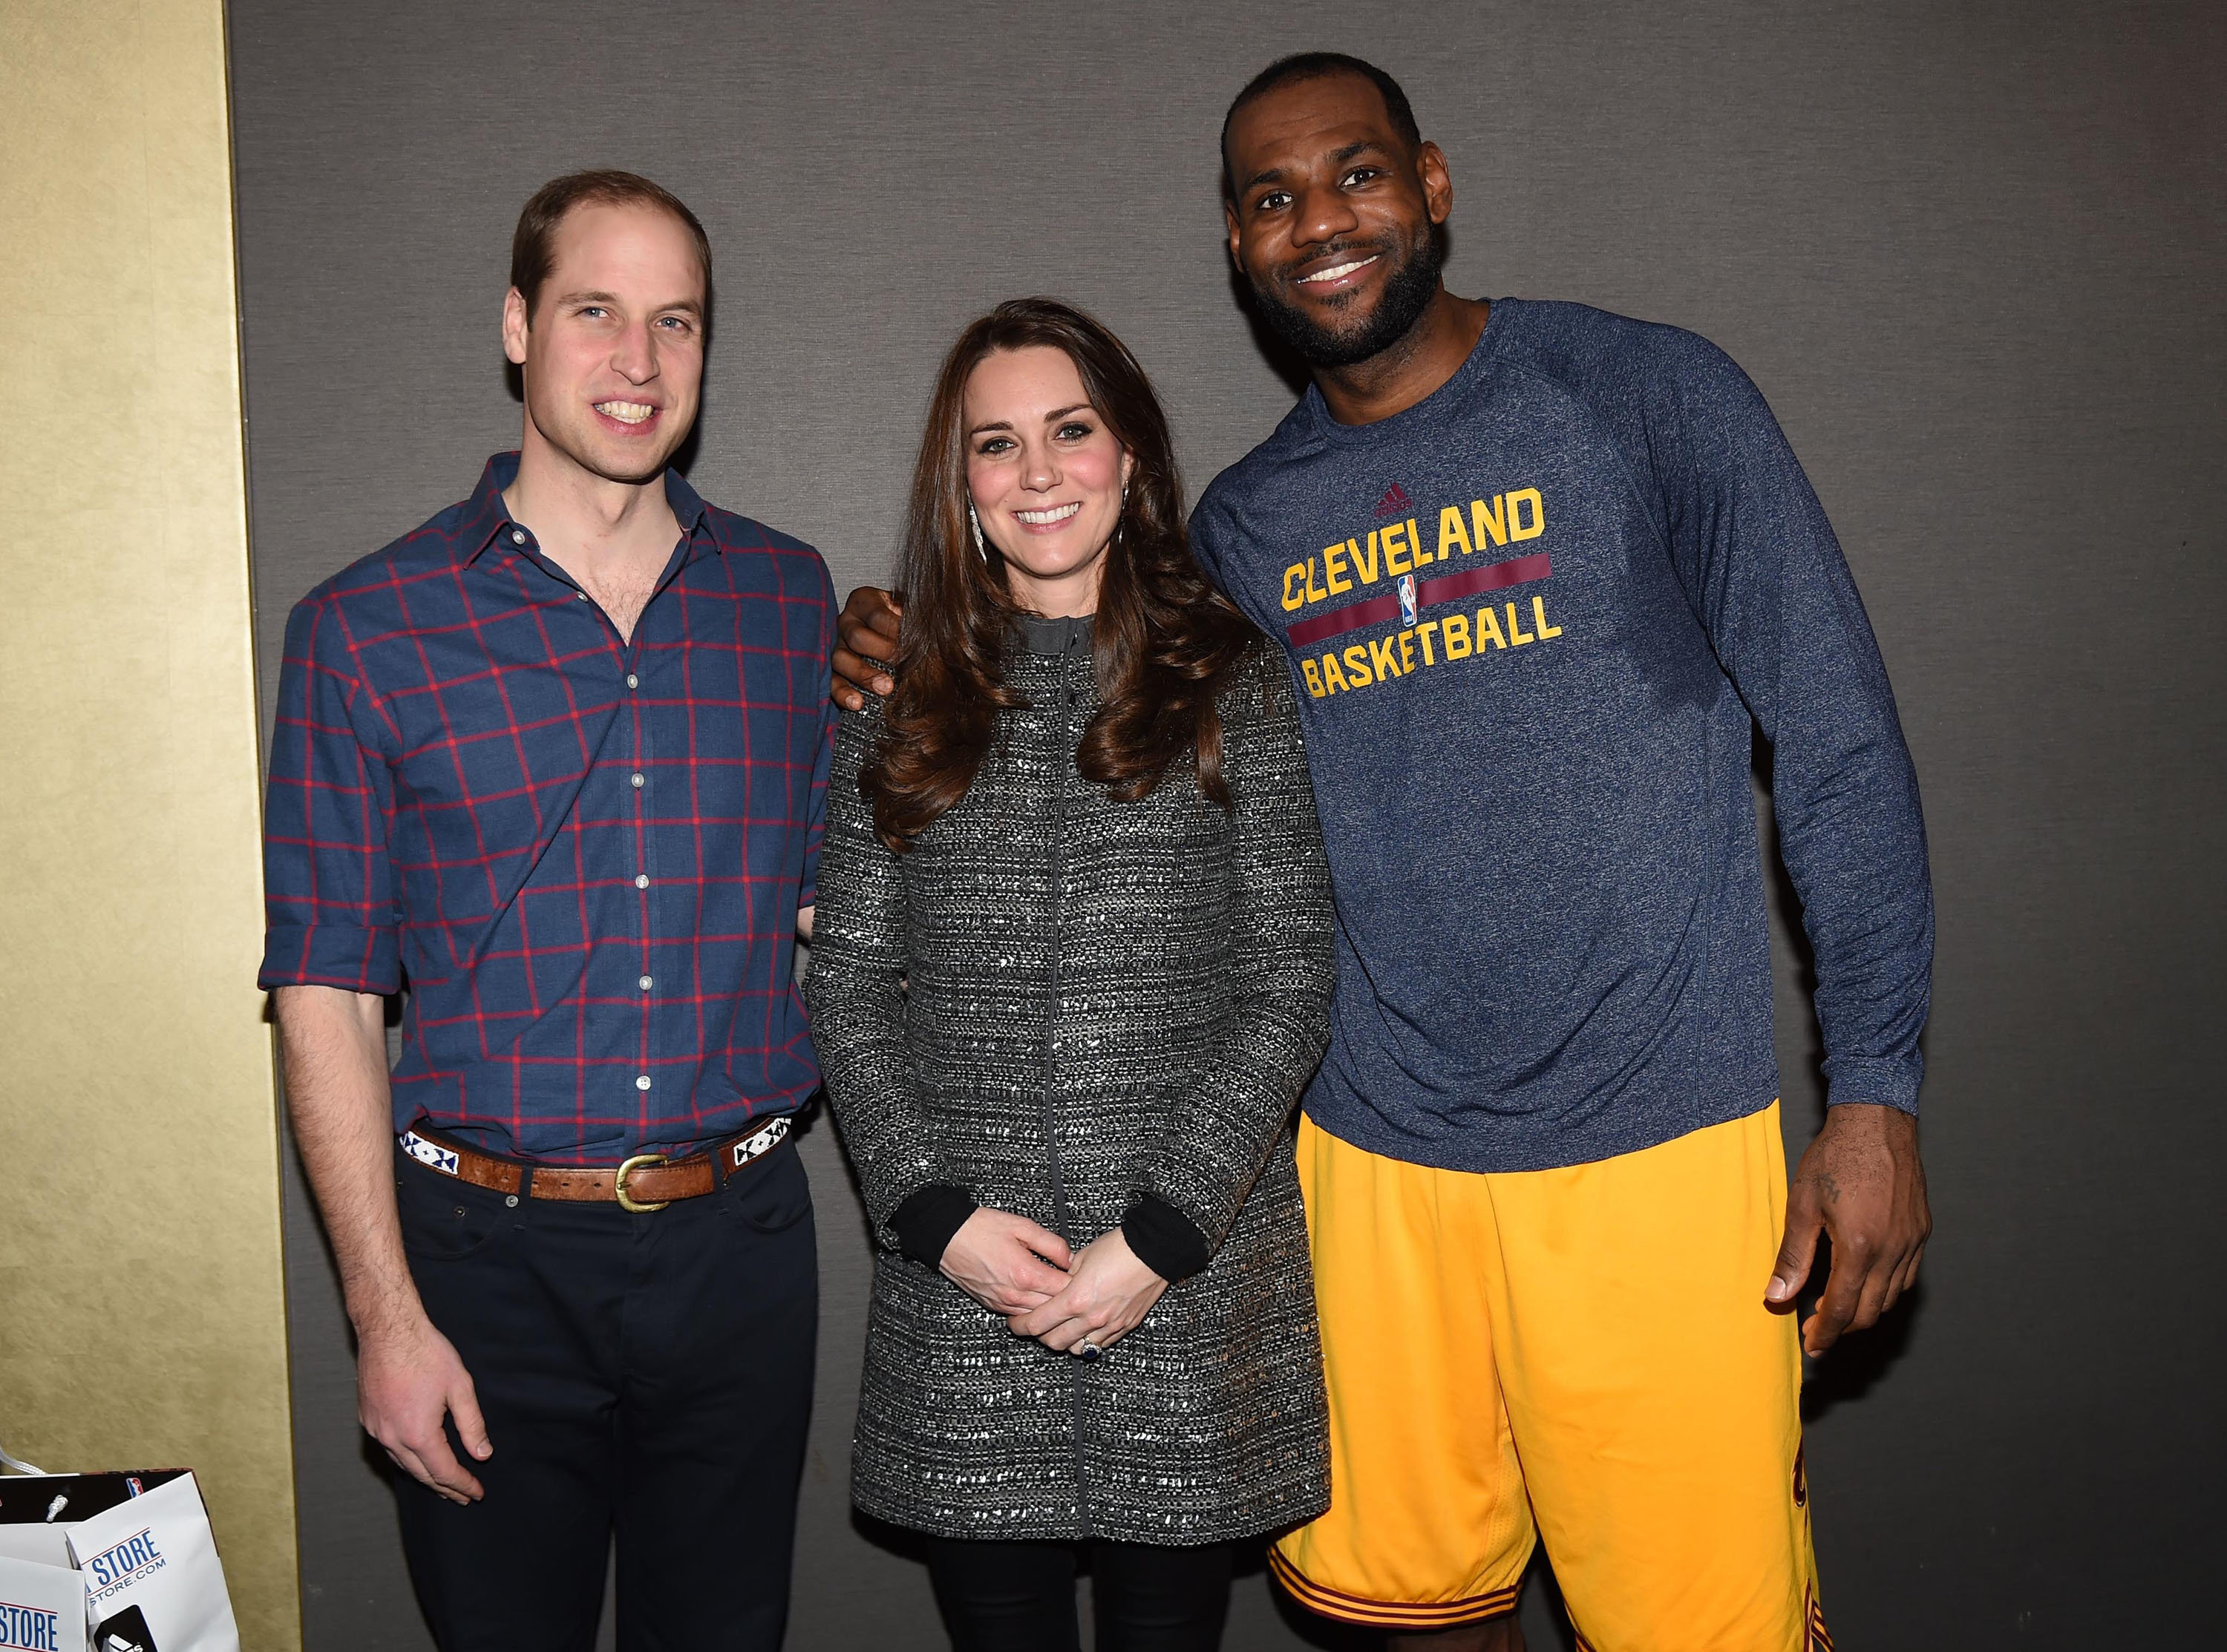 Prince William and Catherine, Duchess of Cambridge pose with LeBron James as they attend a Cleveland Cavaliers vs. Brooklyn N